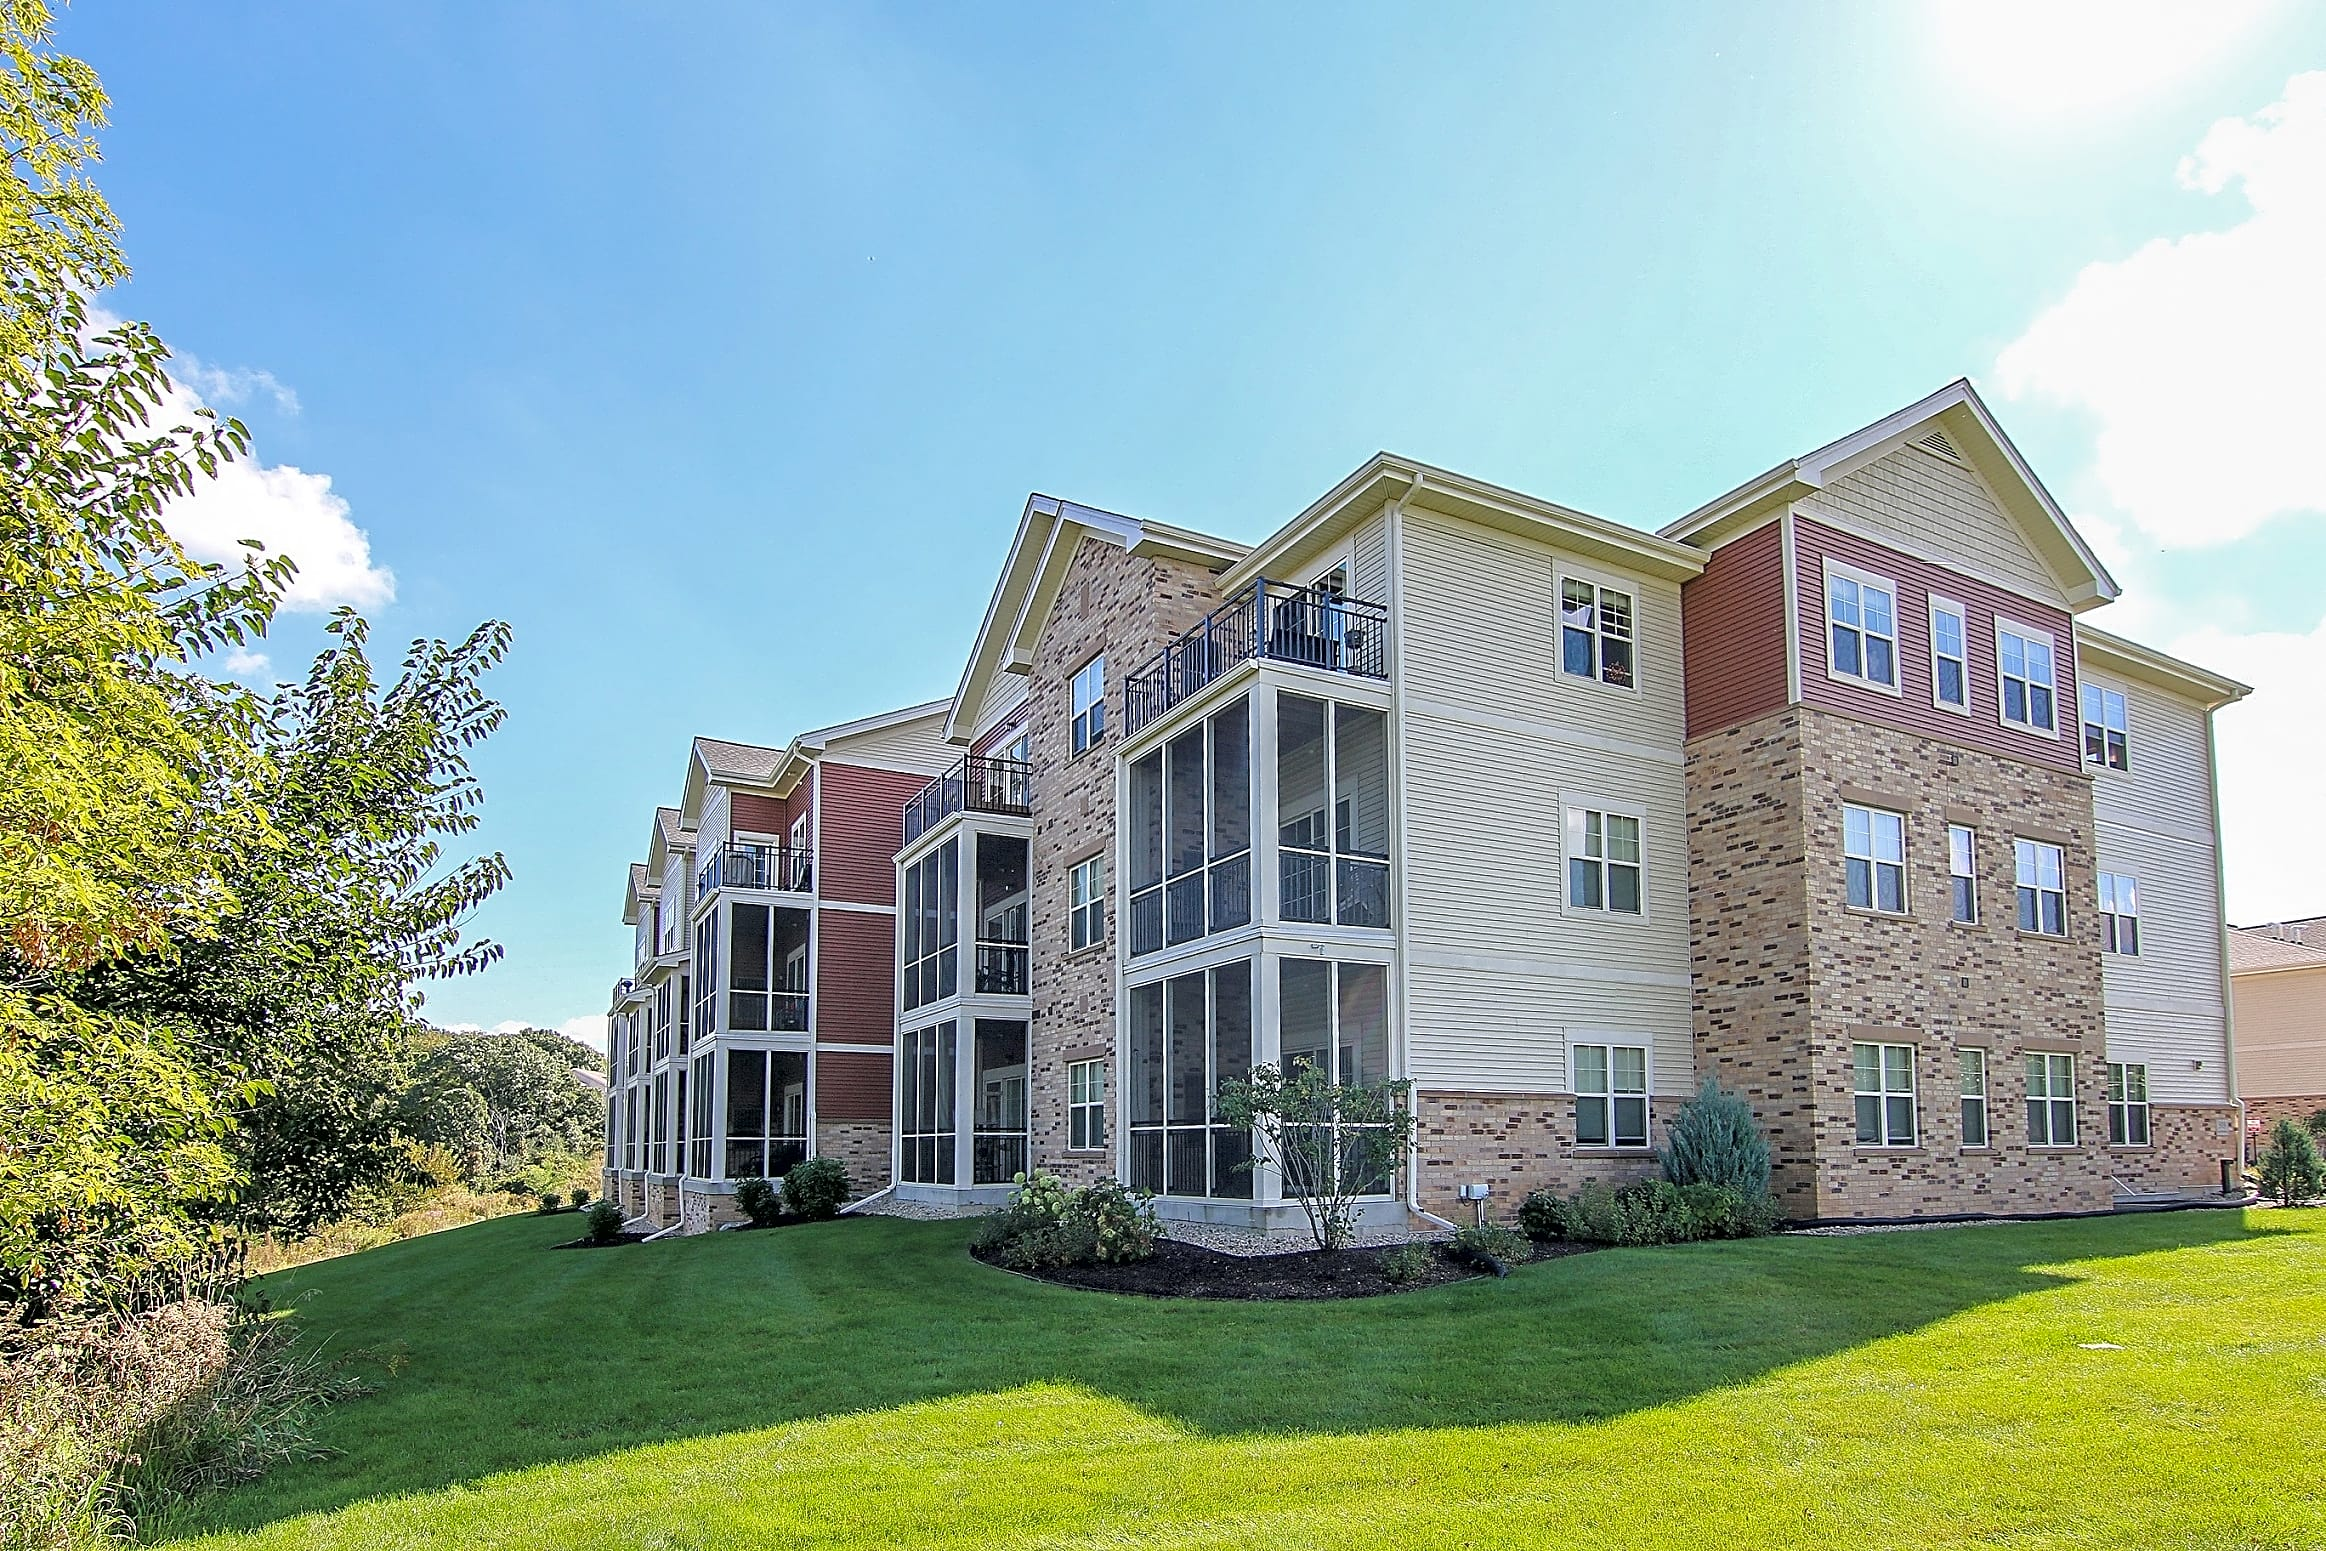 Apartments Near Herzing Stockbridge Trails for Herzing College Students in Madison, WI